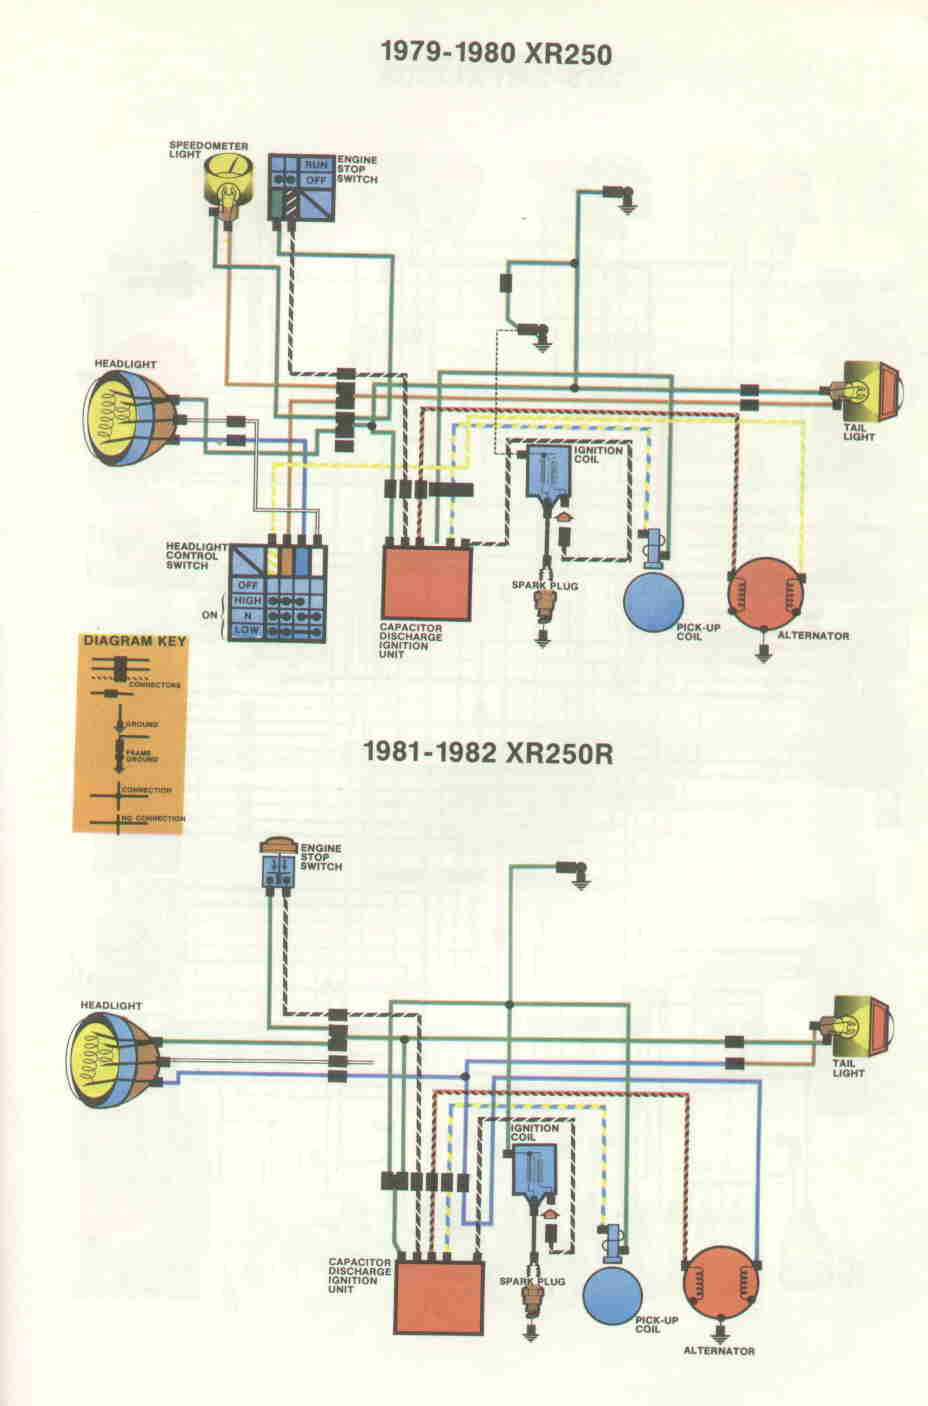 Honda Xr250 Wiring Diagram Diagrams Schema 1980 Kz1000 Color 91 Stereo